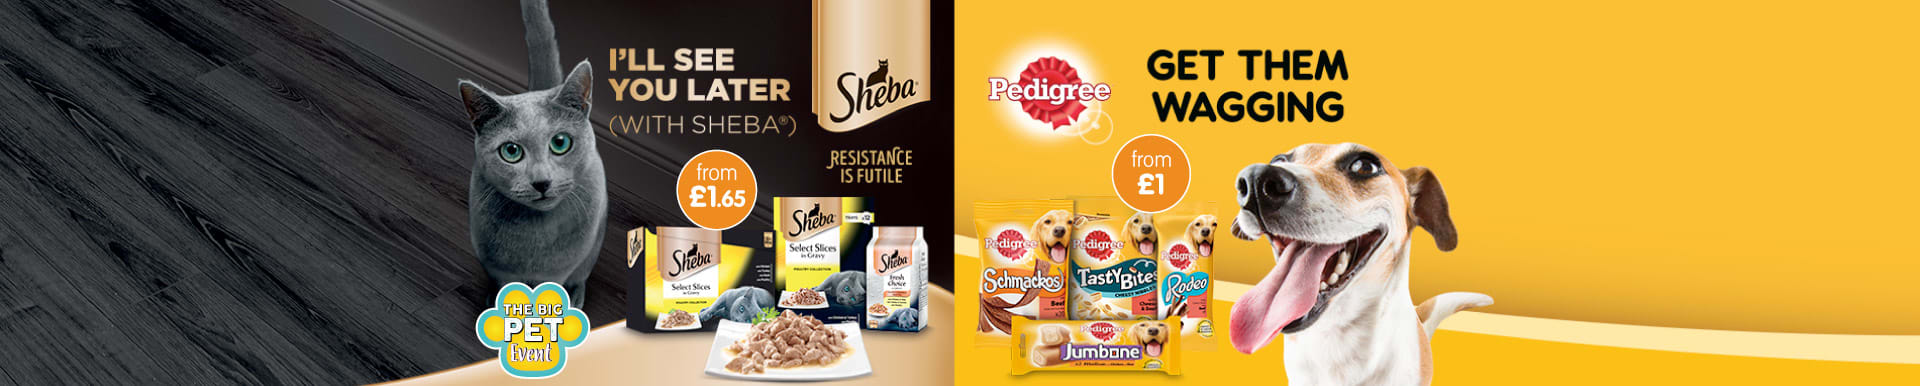 Save on Pedigree and Sheba at B&M.